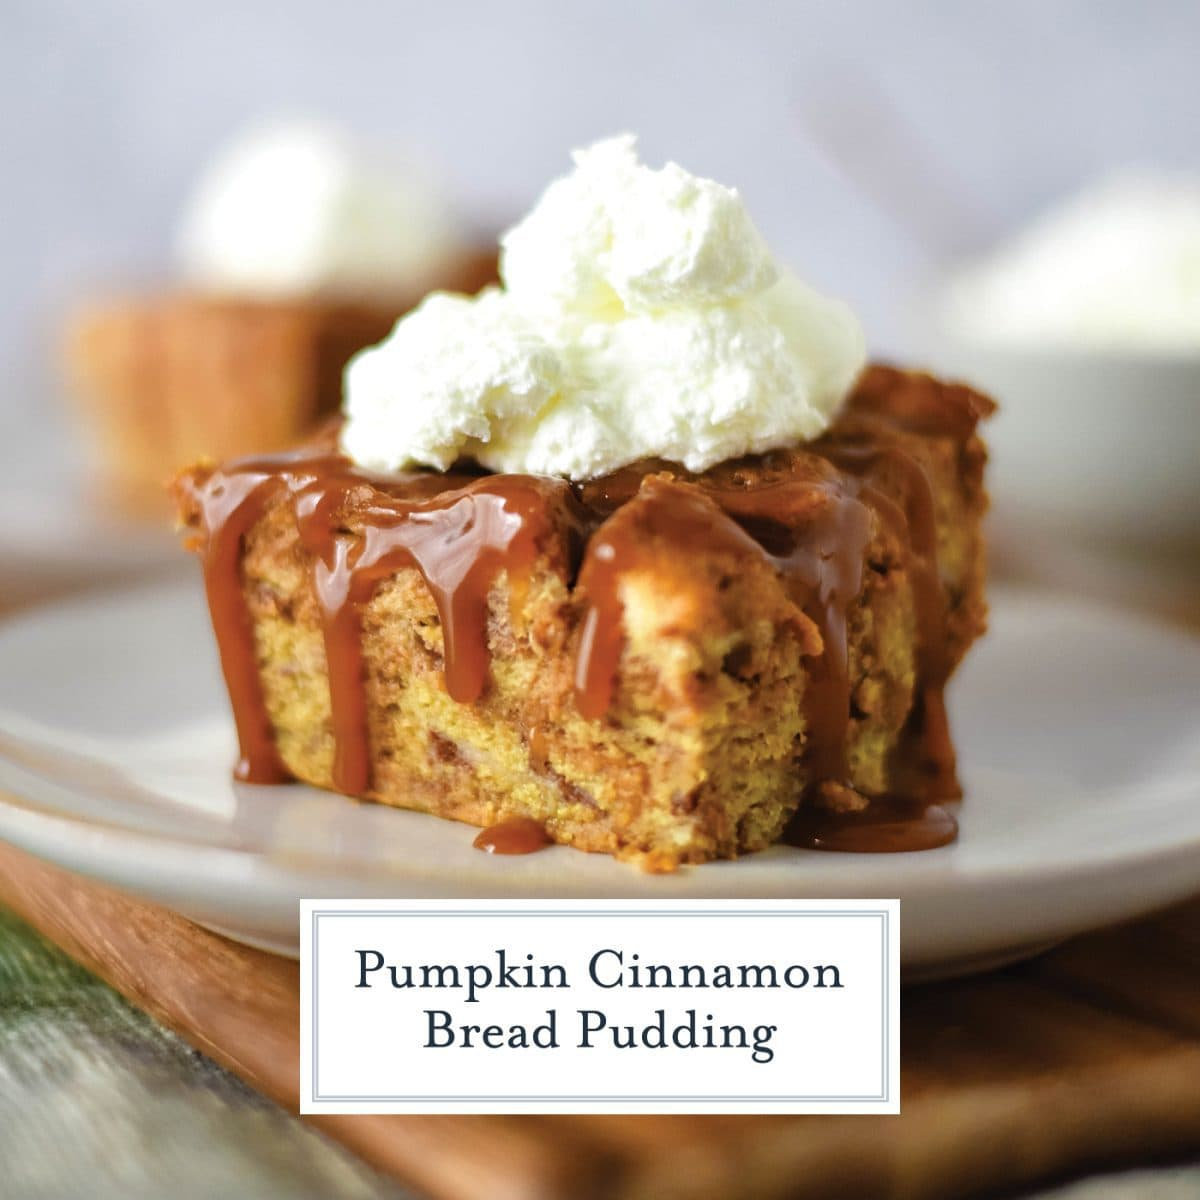 caramel sauce dripping off of bread pudding